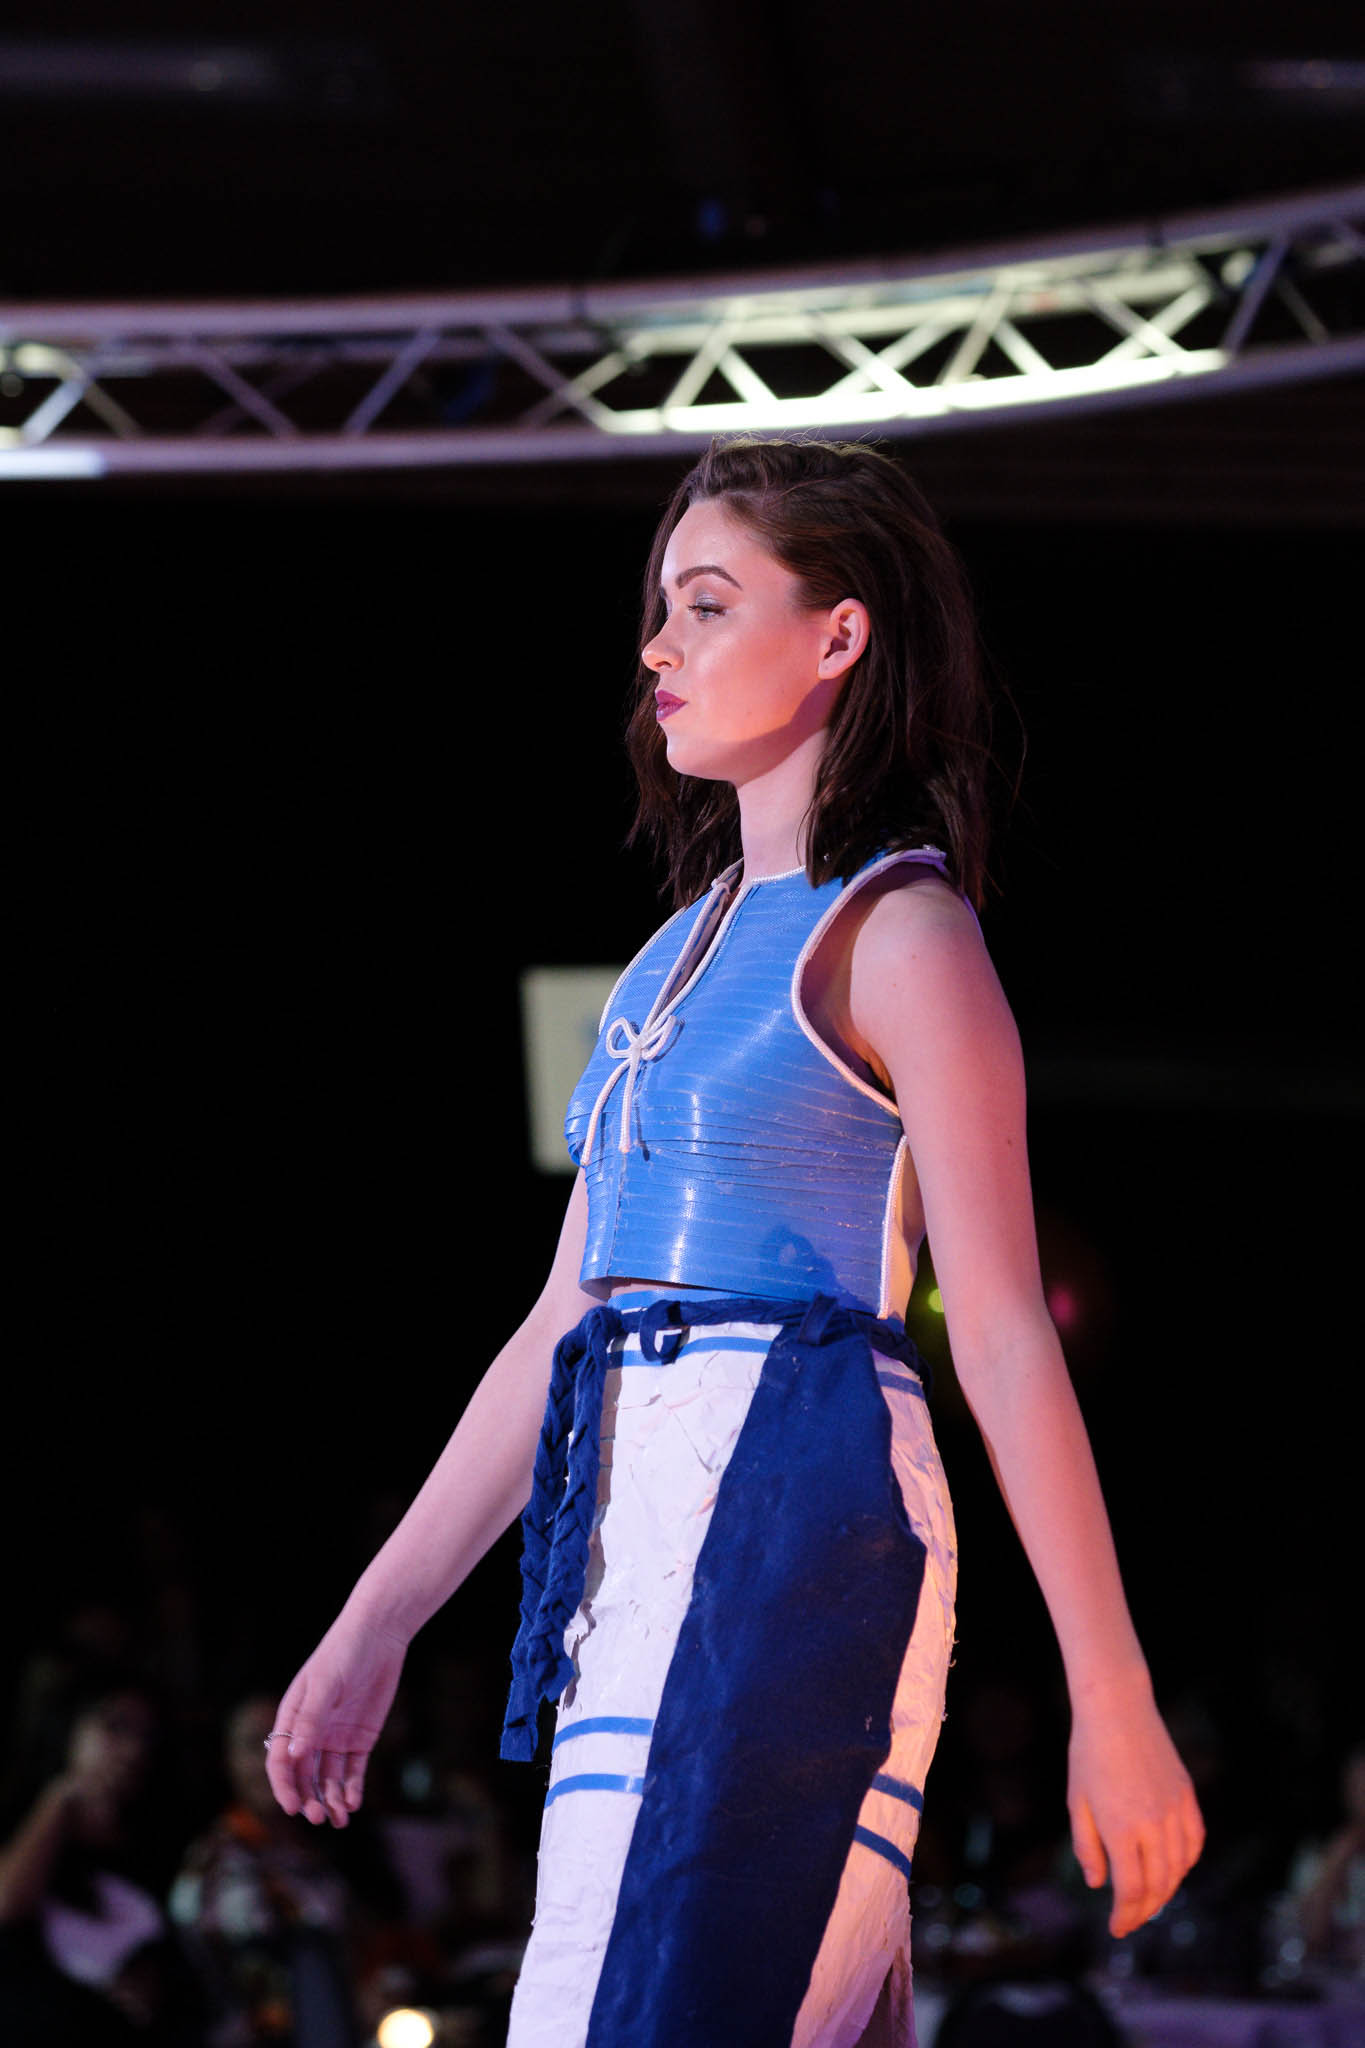 Model on catwalk at fashion show wearing blue and white dress made of recycled material